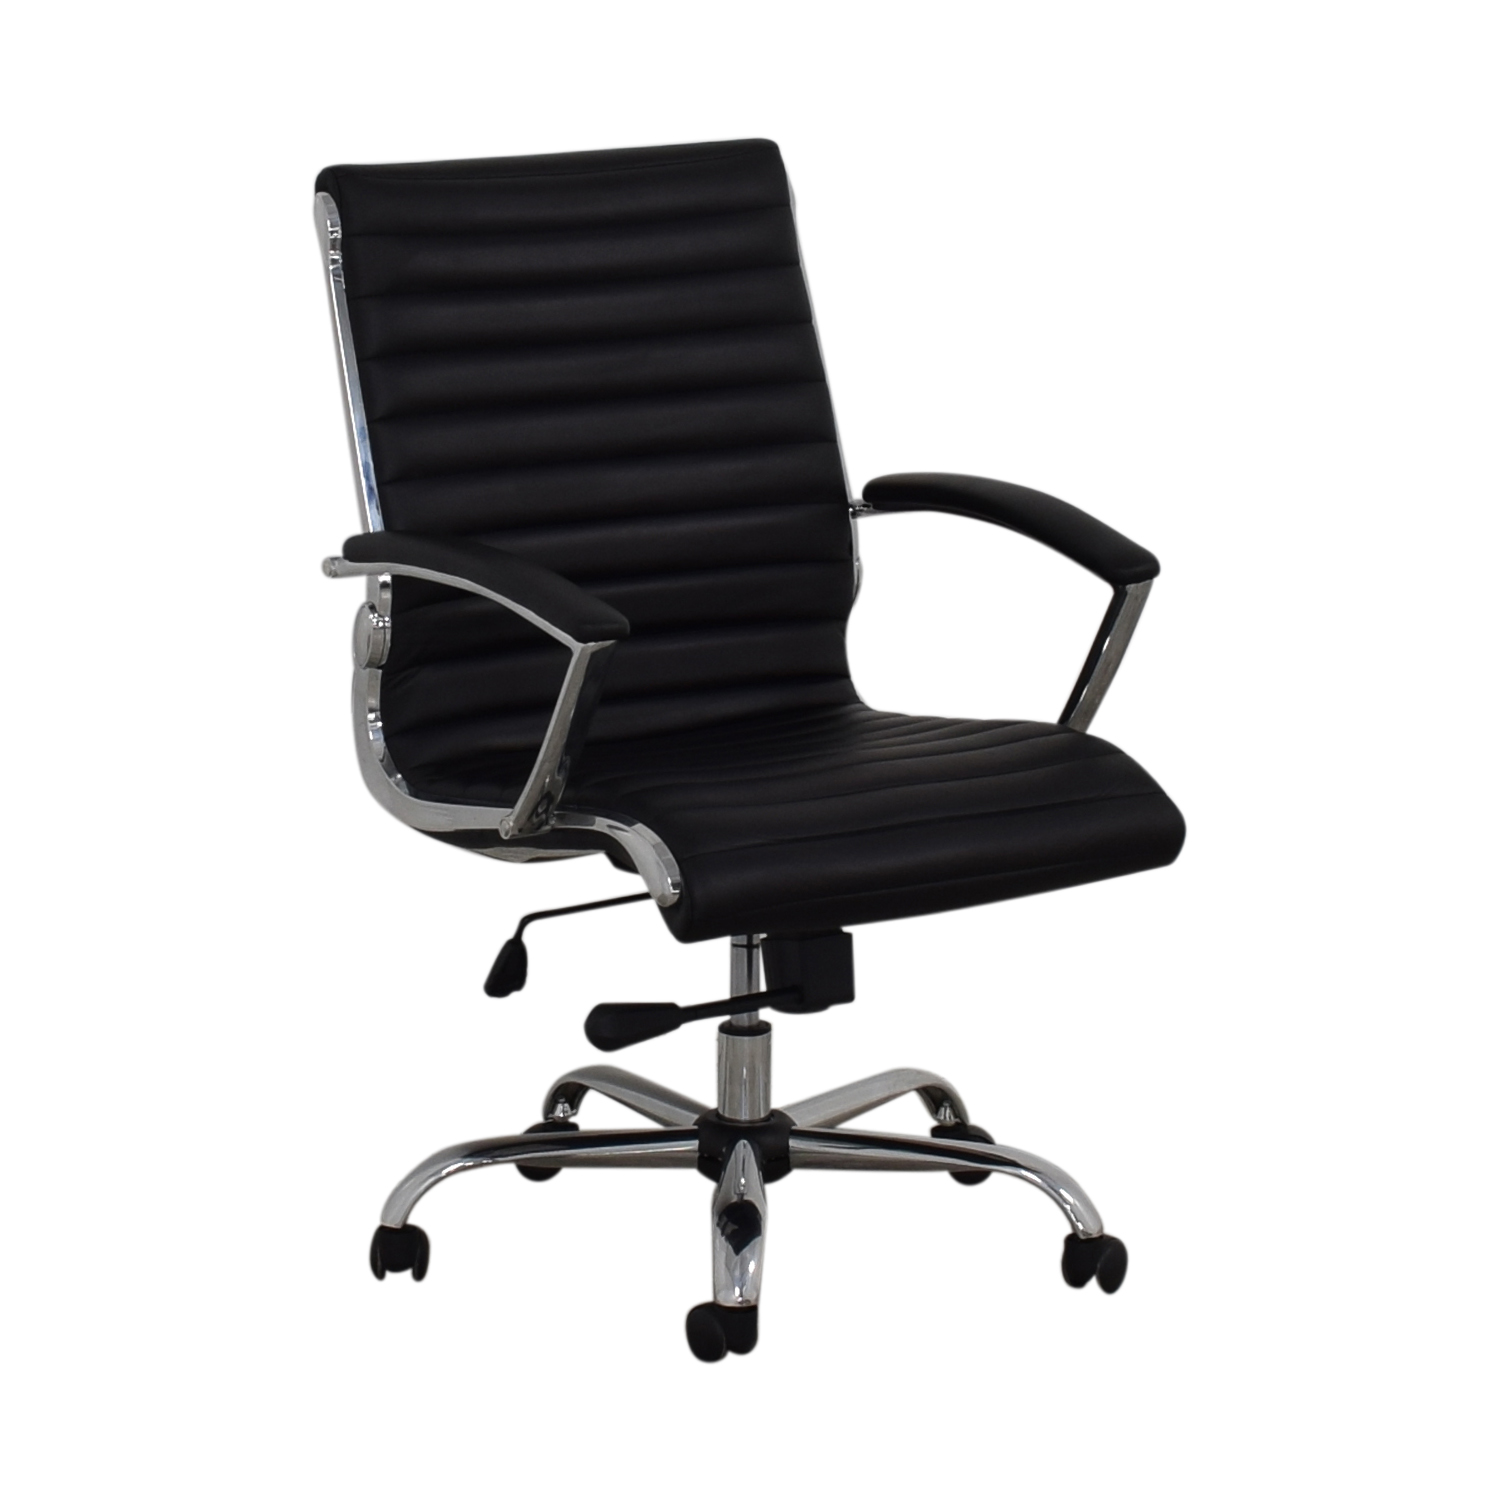 Staples Staples Adjustable Black Office Chair for sale